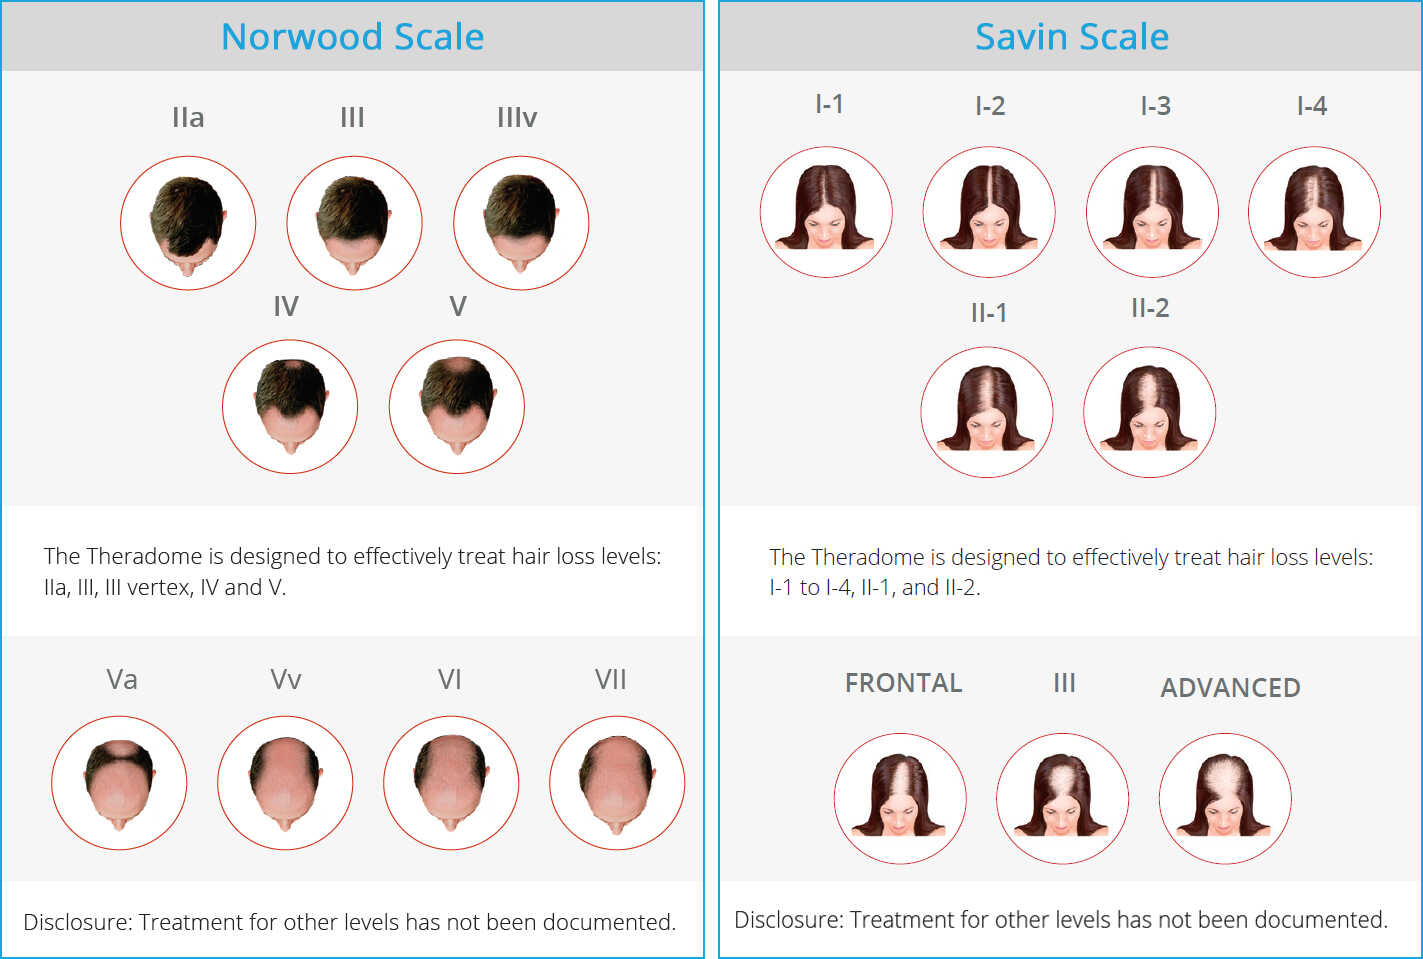 Savin Scale | Norwood Scale